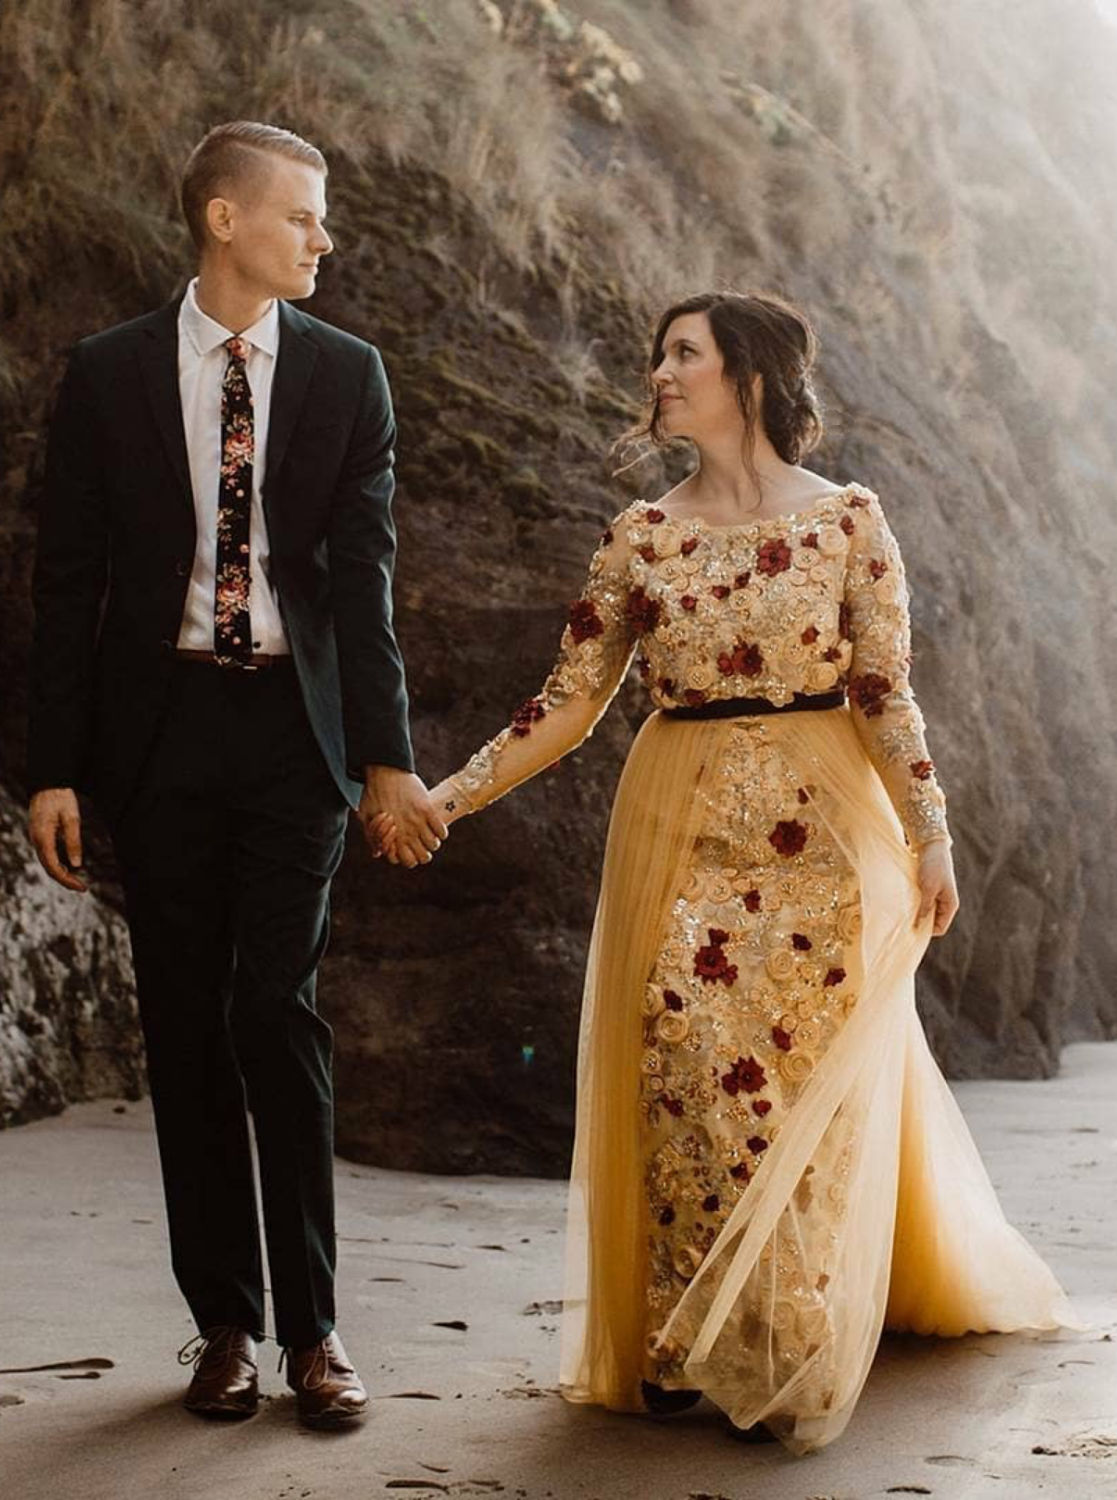 bride wearing golden wedding dress holding groom's hand